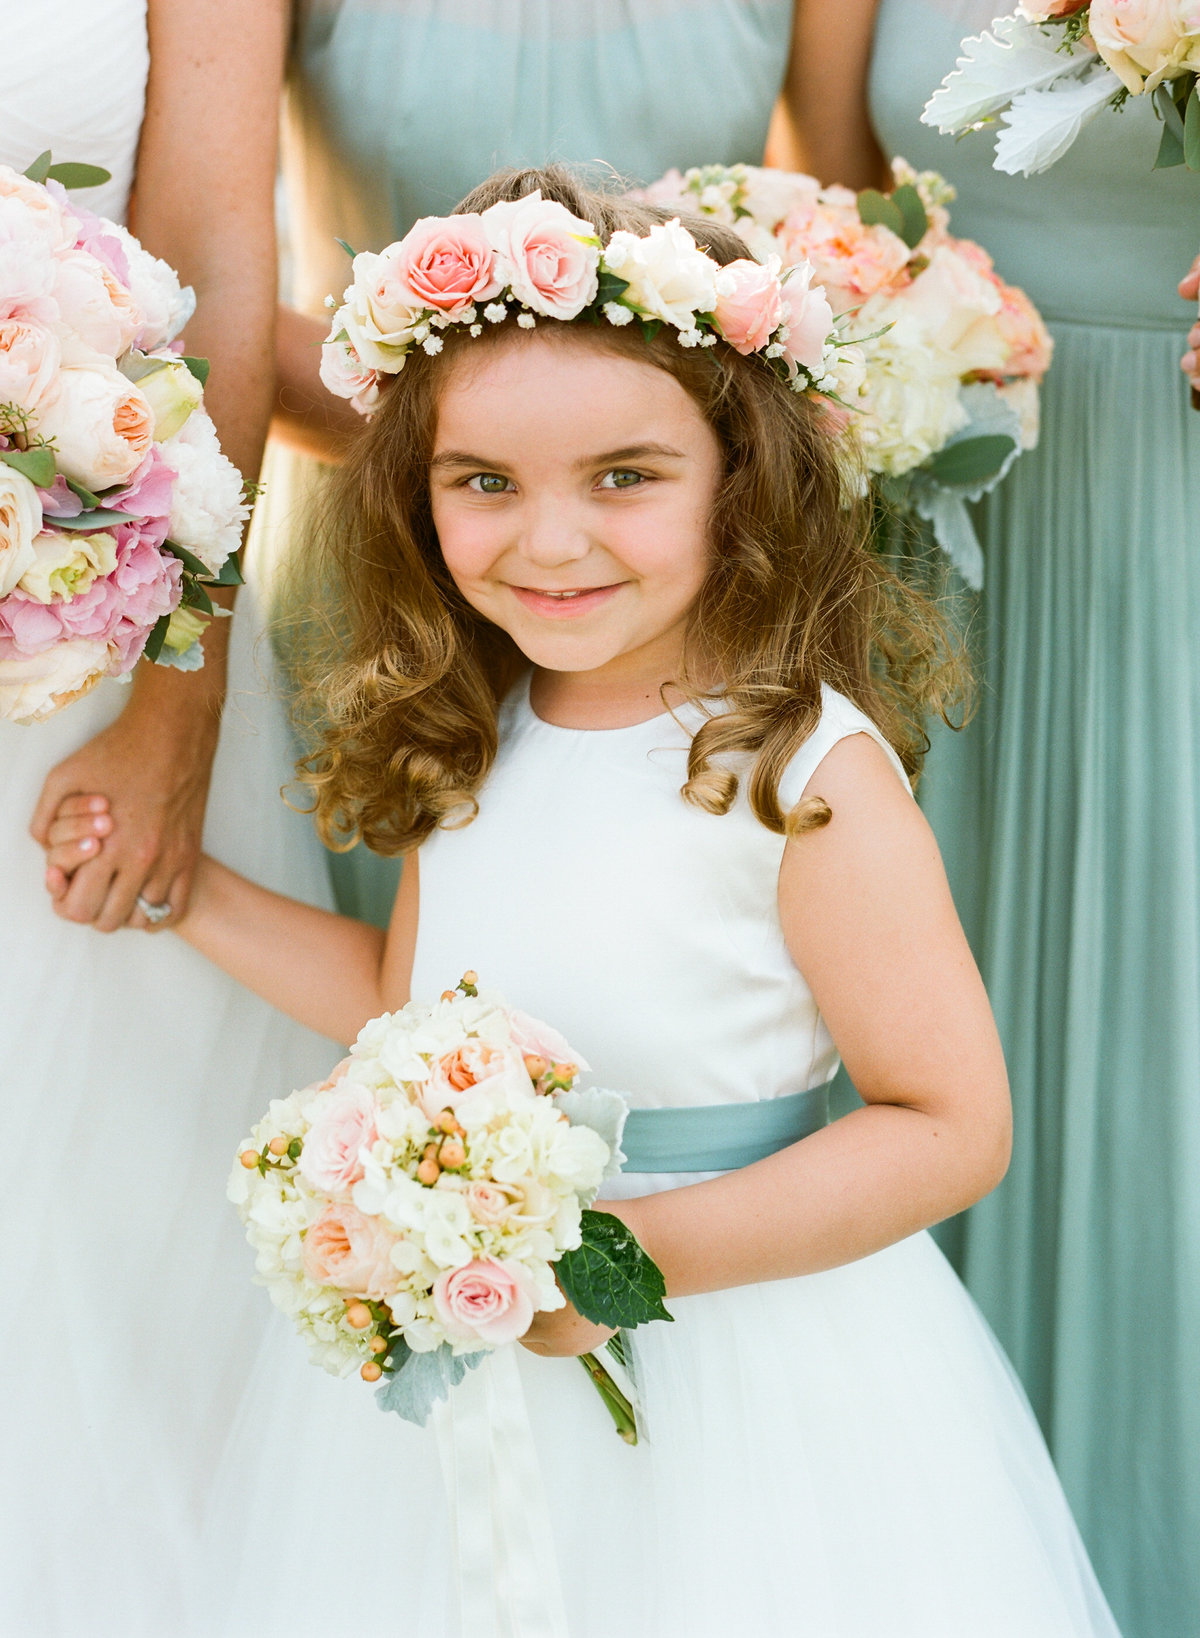 Flower girl with blush flower crown